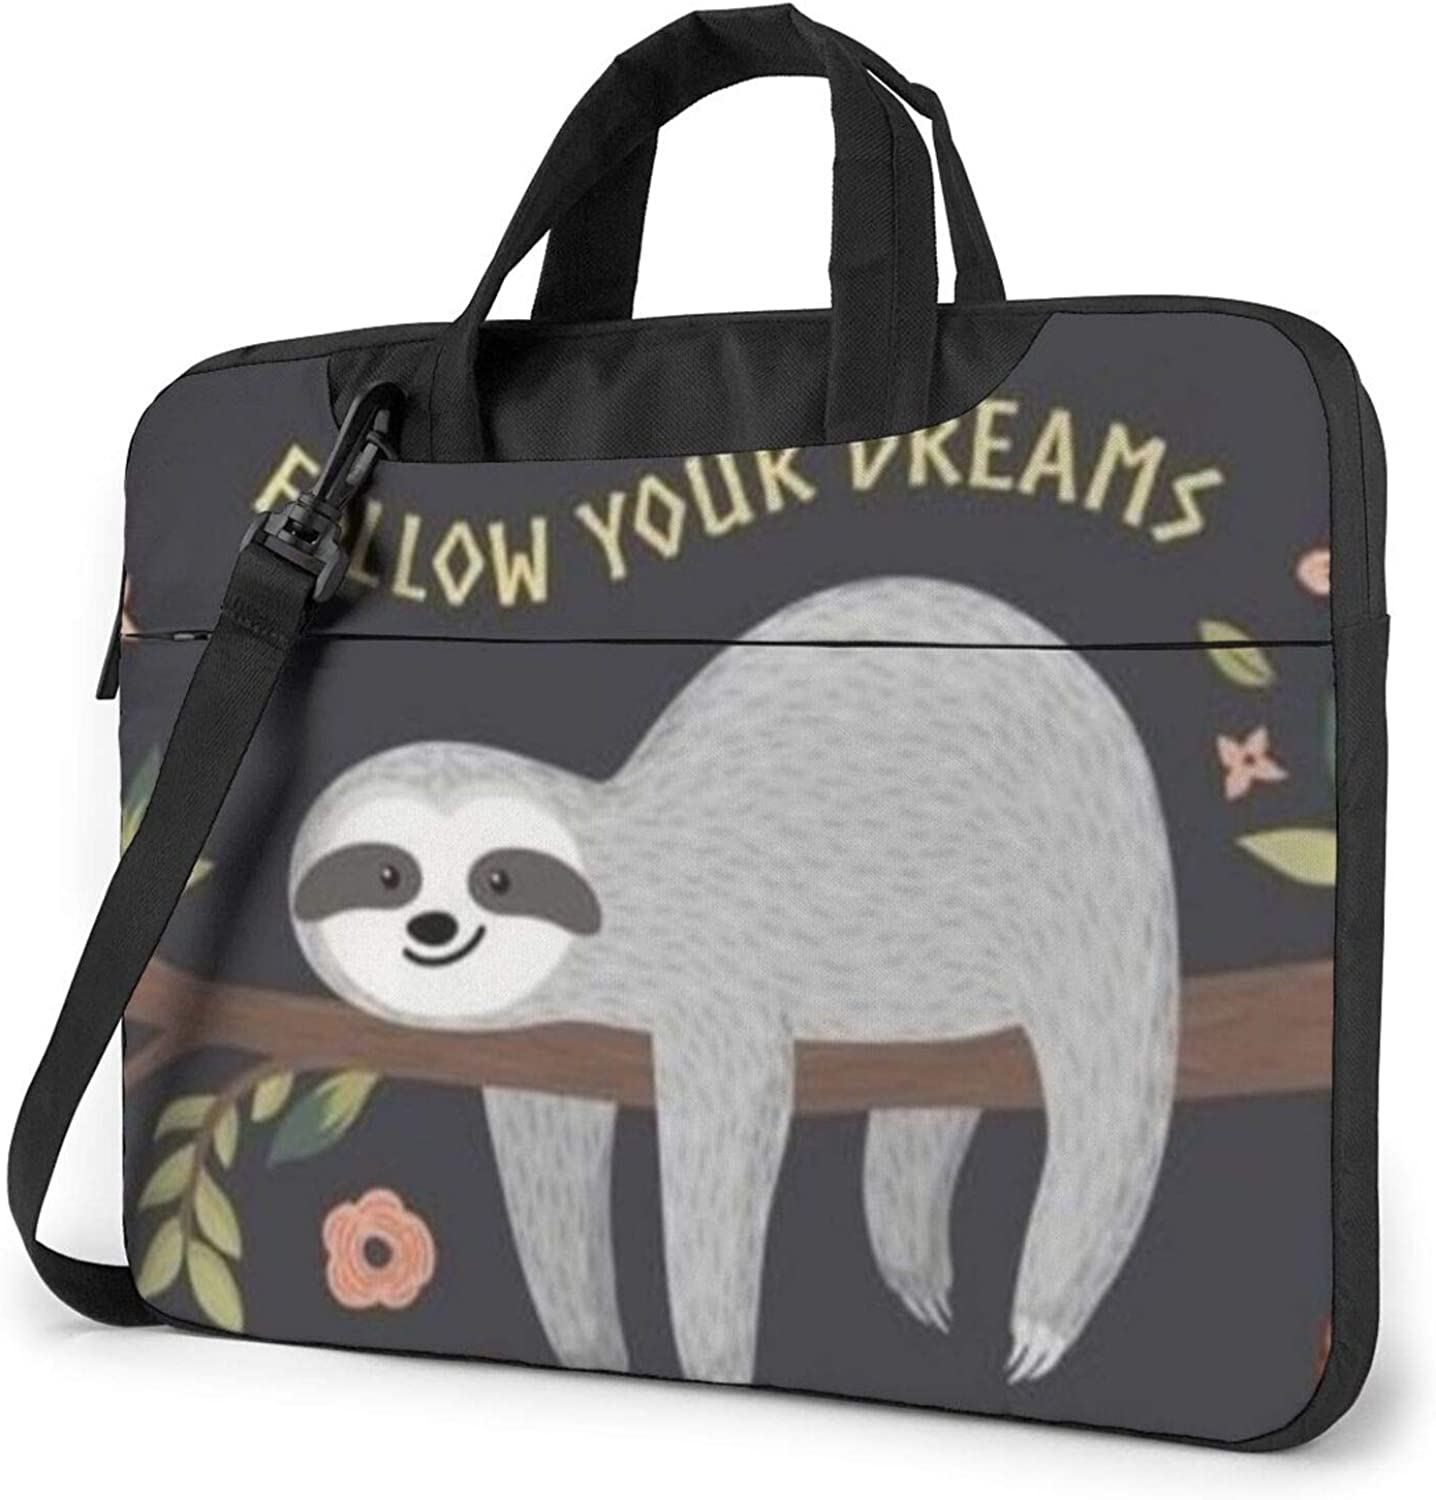 Laptop Shoulder Bag Follow Your Computer M All items in the store Dreams Sloth Cheap mail order specialty store Tote